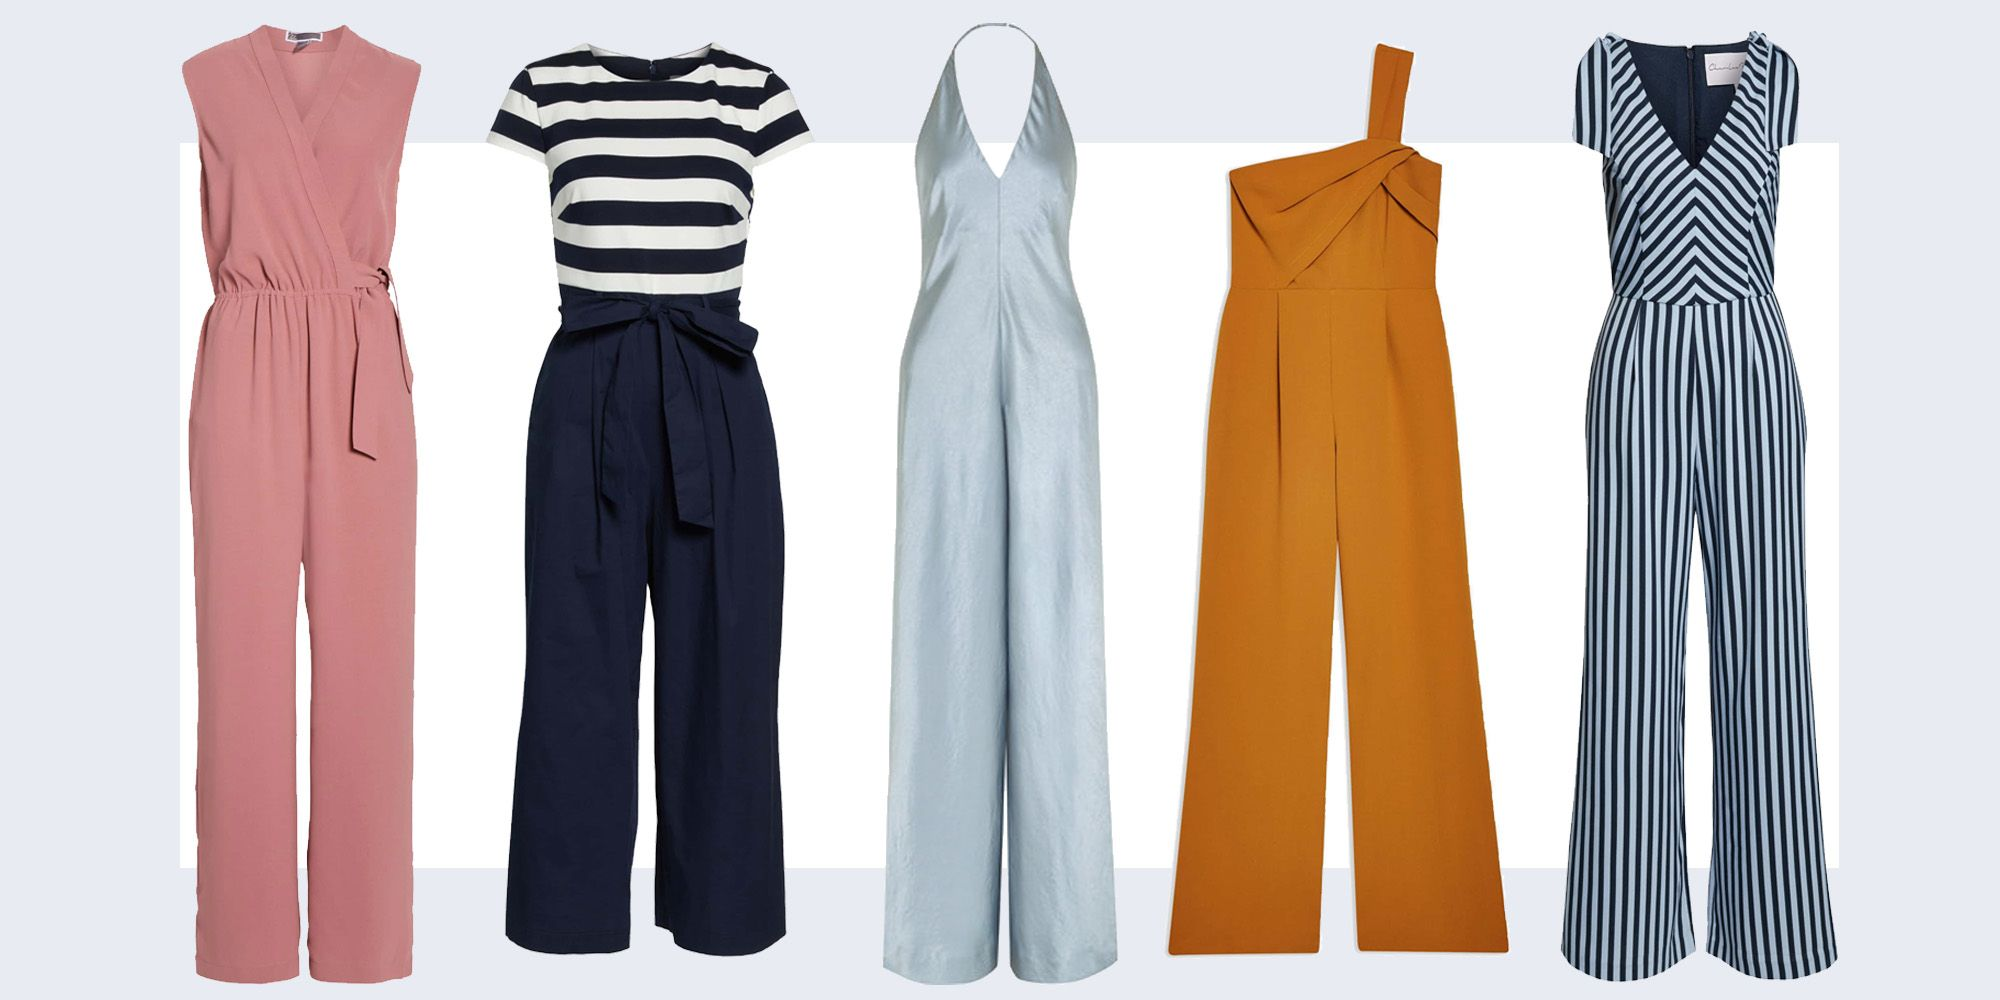 760cb4b6422 25 Dressy Jumpsuits for Wedding Guests 2019 - Best Jumpsuits to Wear ...